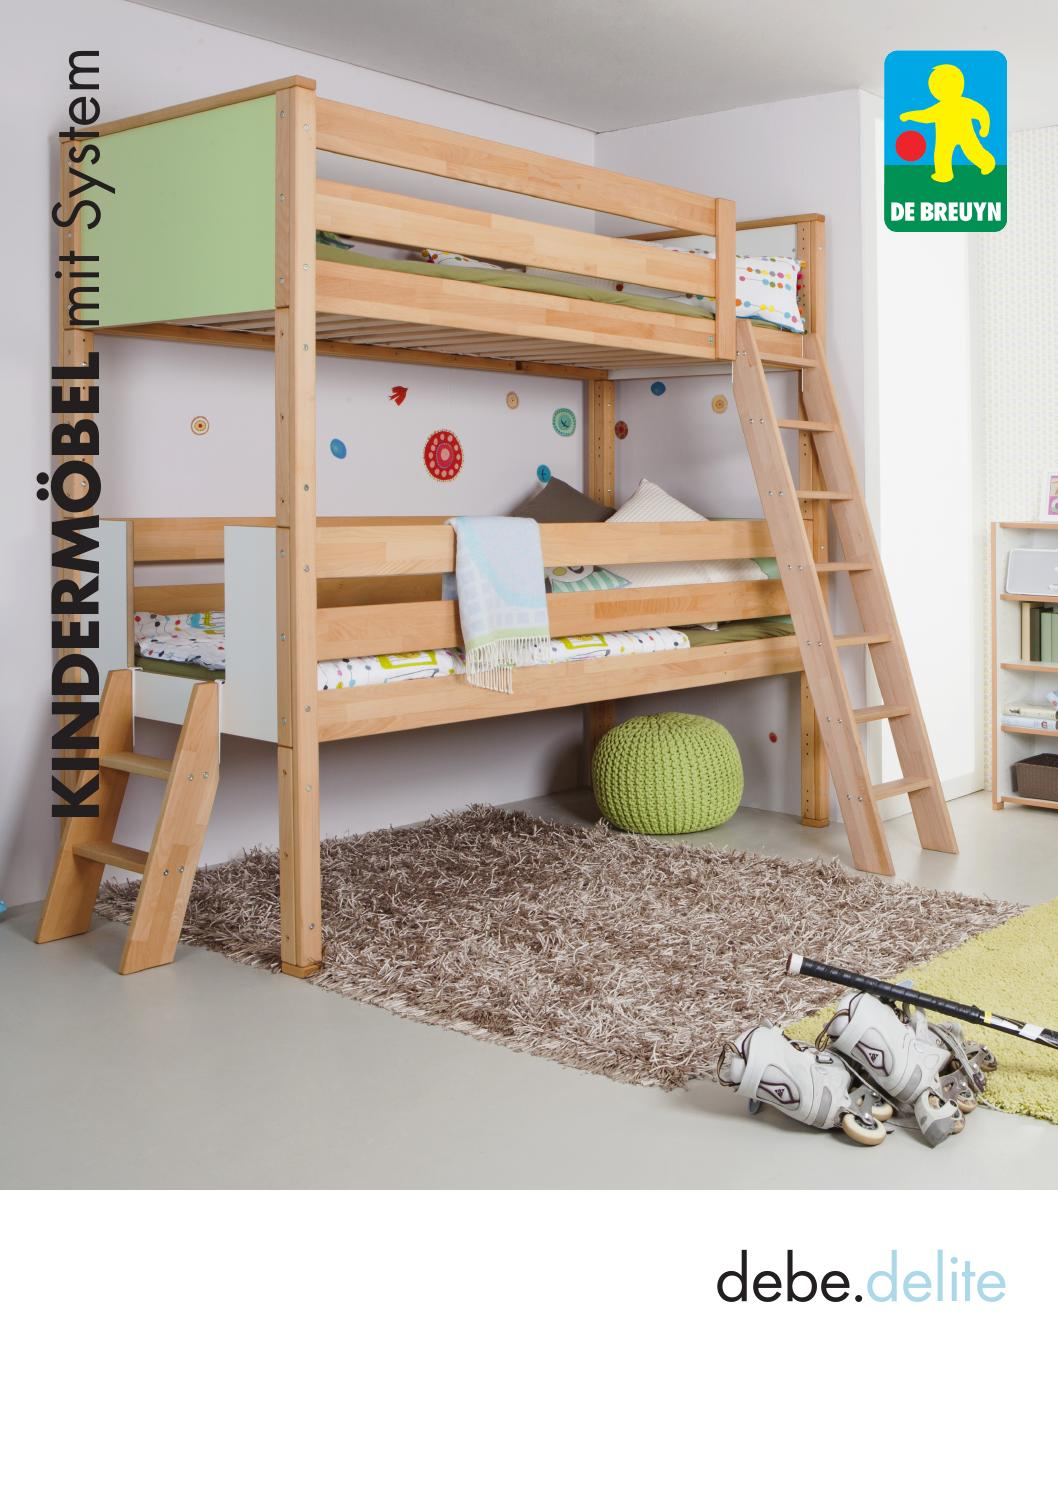 kinderm bel mit system 2014 by j rg de breuyn issuu. Black Bedroom Furniture Sets. Home Design Ideas